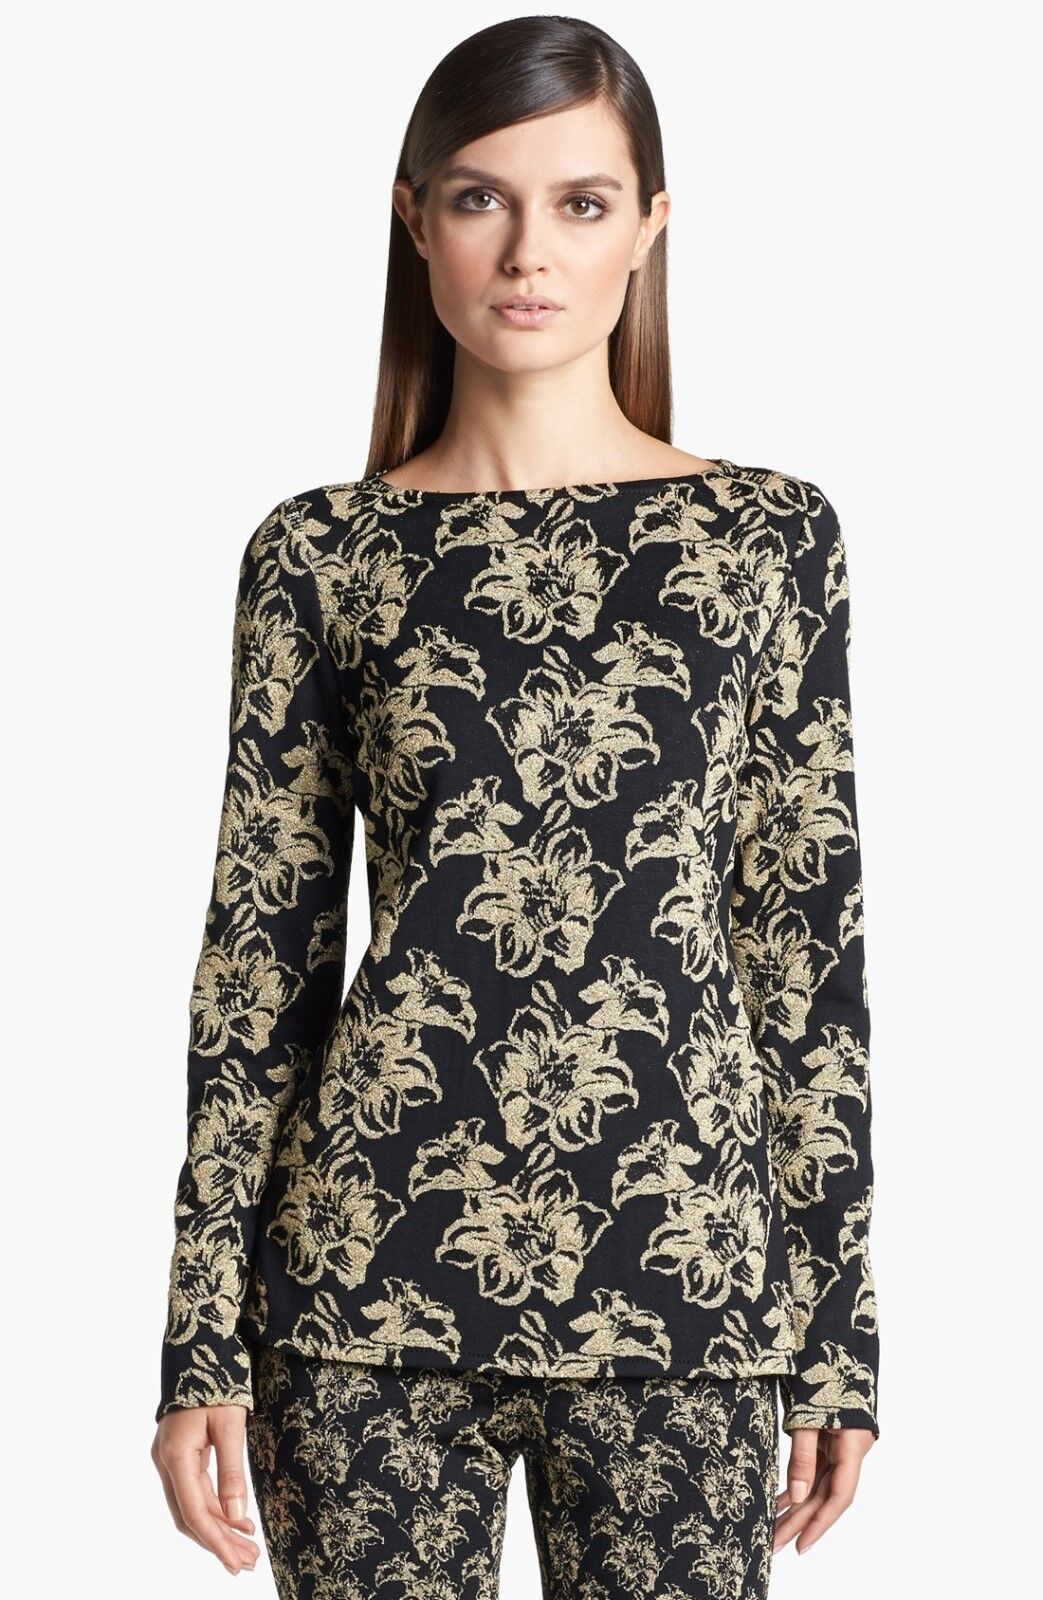 St. John Collection Lily Shimmer Jacquard Top  ( Size M)